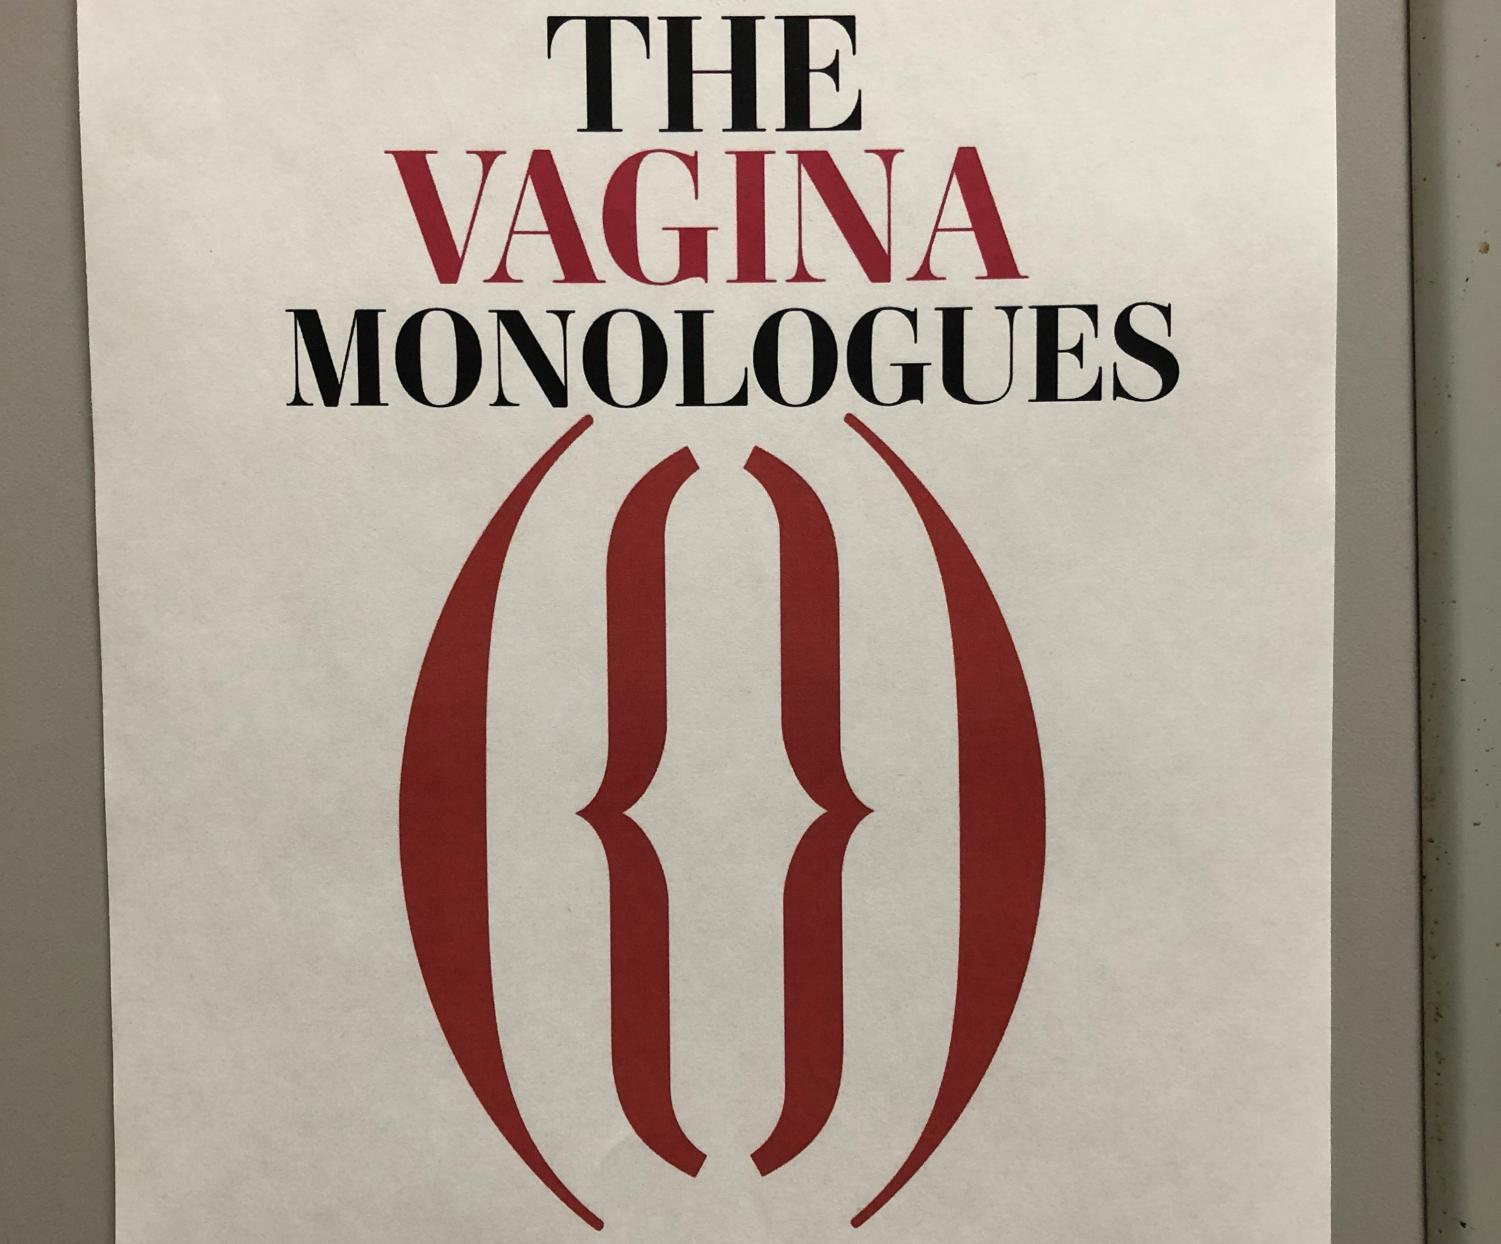 """Flyers are located across campus with information on """"The Vagina Monologues"""" performance."""